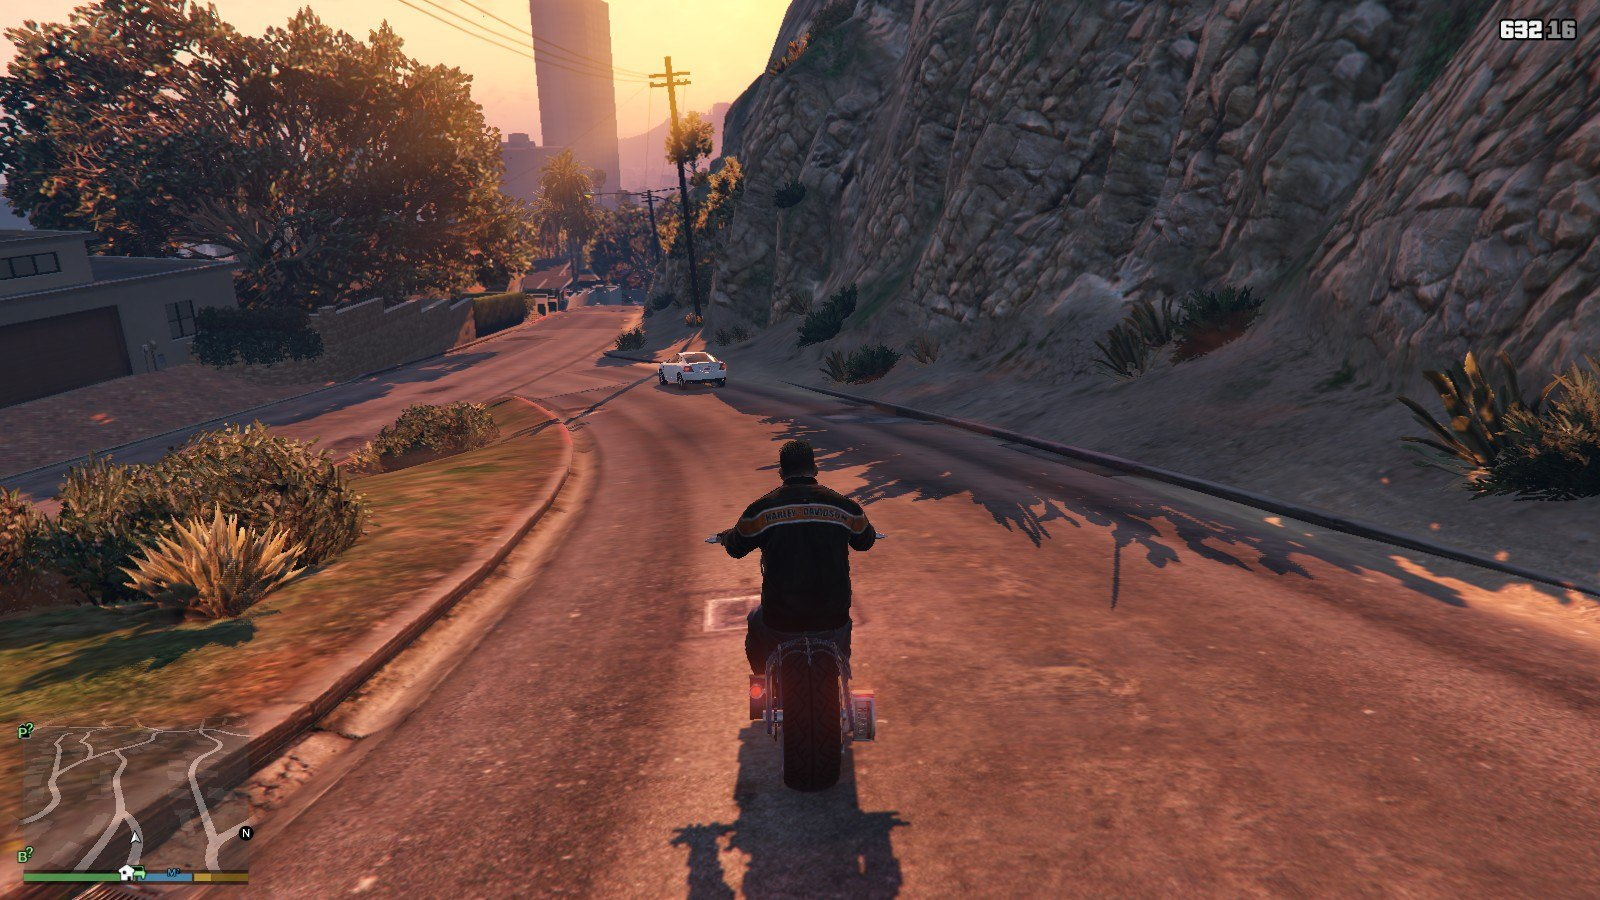 Harley Davidson Motocycle Leather Jacket GTA5 Mods (4)